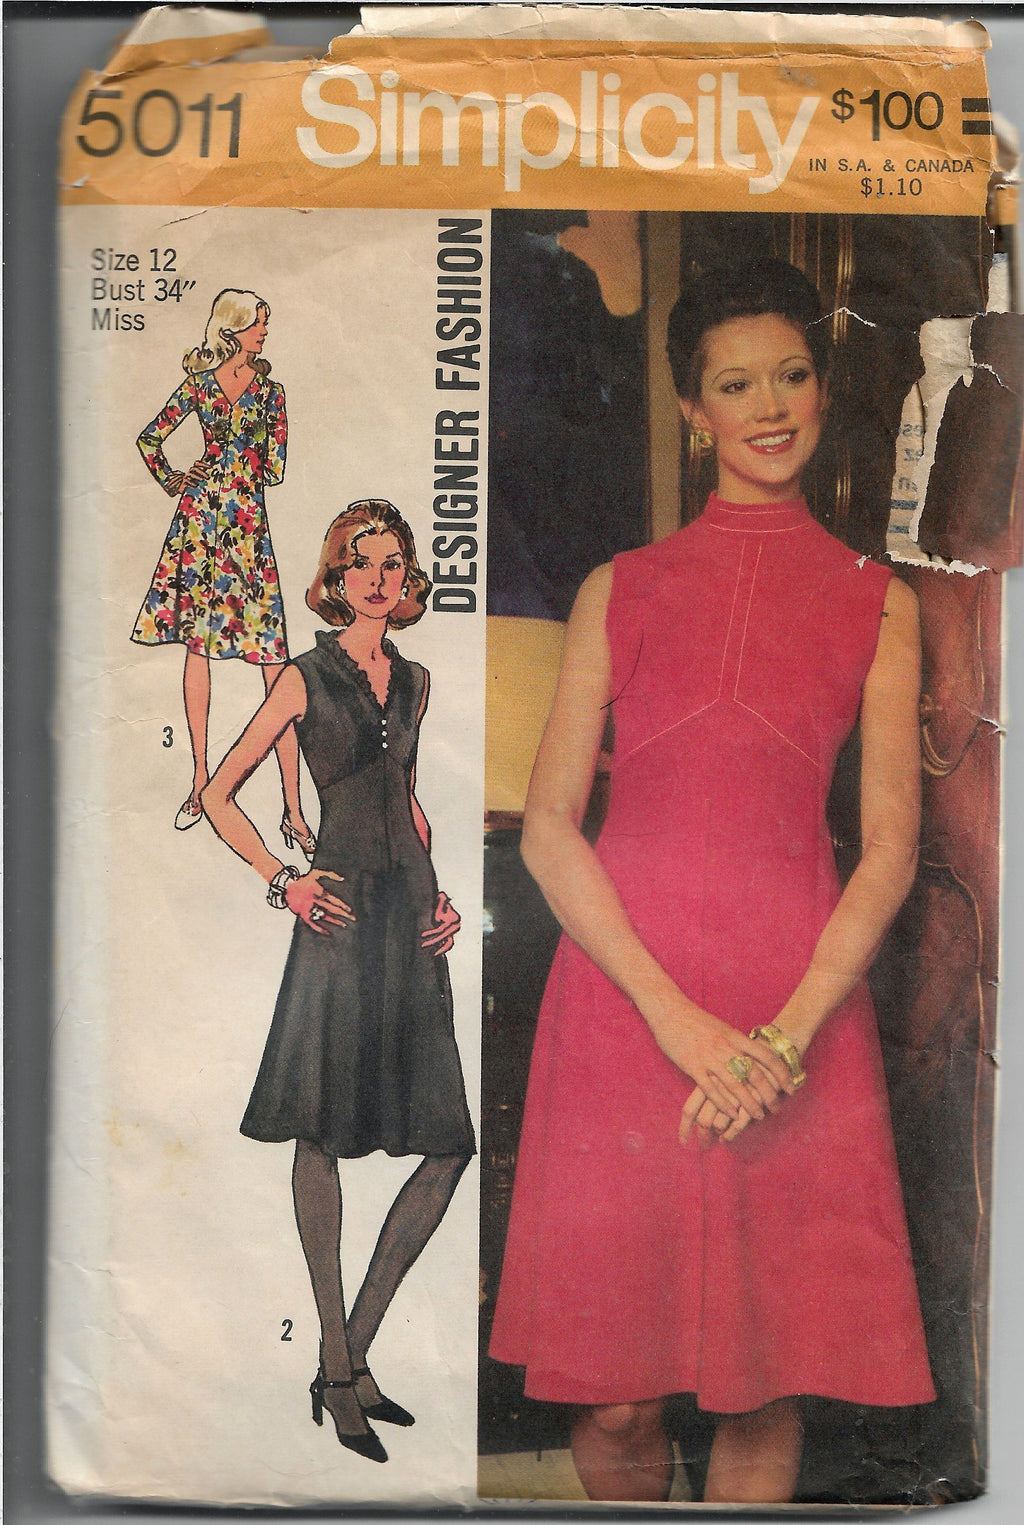 Simplicity 5011 Sleeveless Dress Vintage Sewing Pattern 1970s Designer Fashion - VintageStitching - Vintage Sewing Patterns